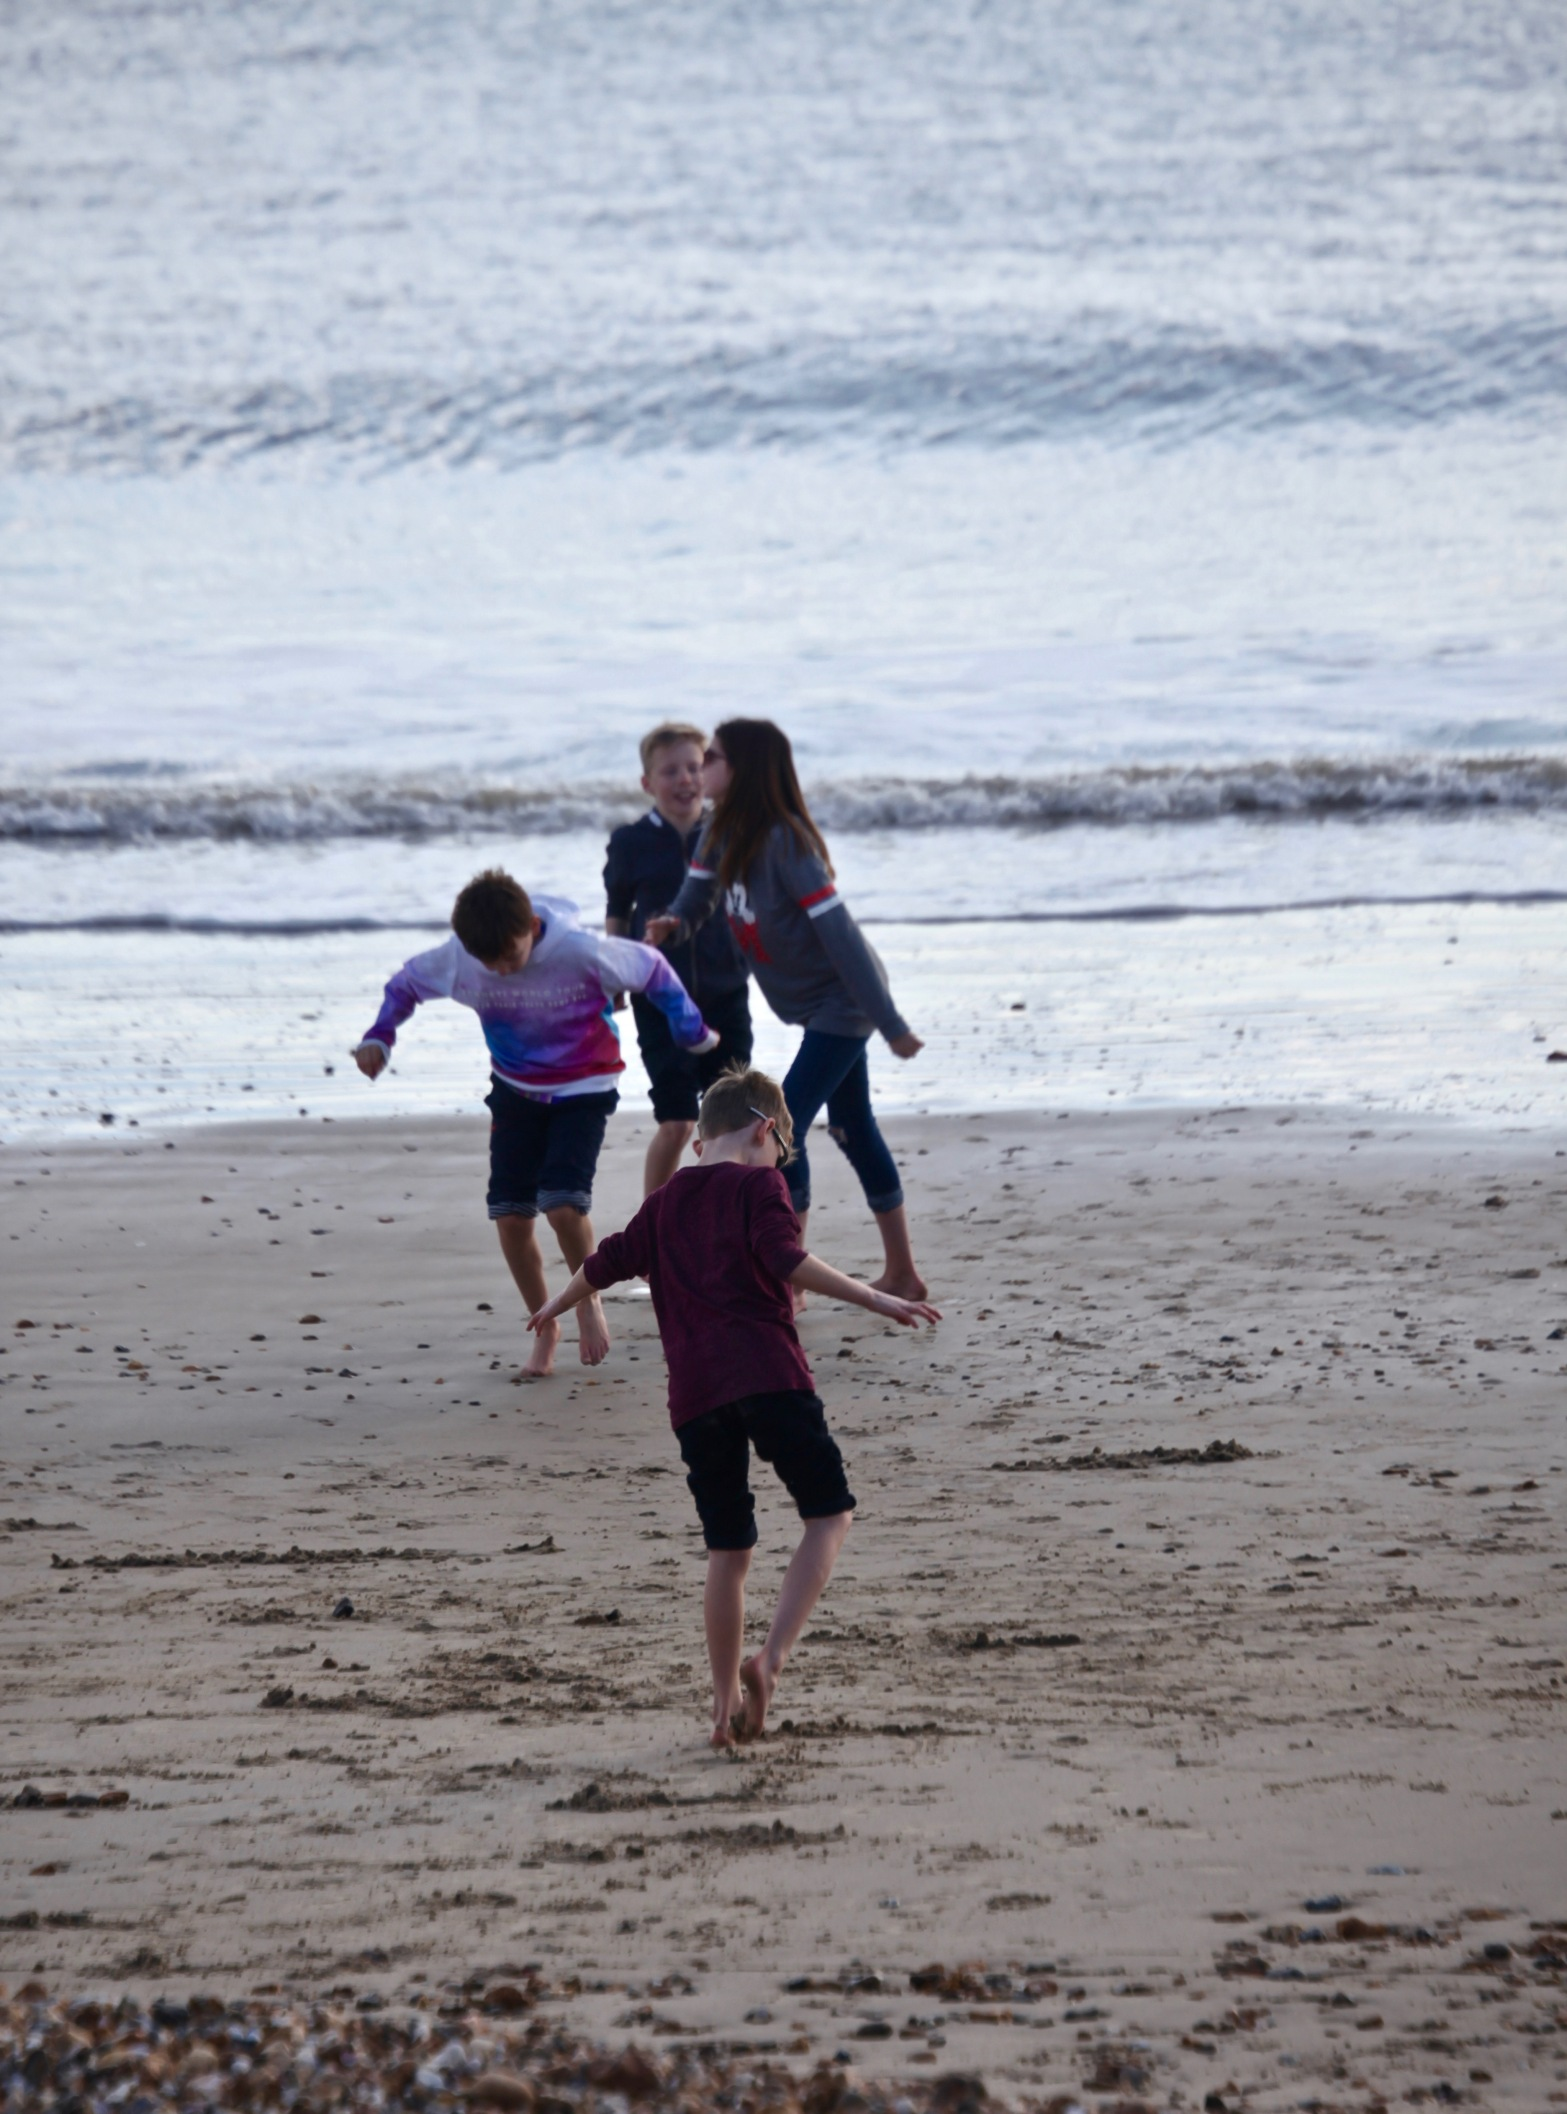 Children on beach 2